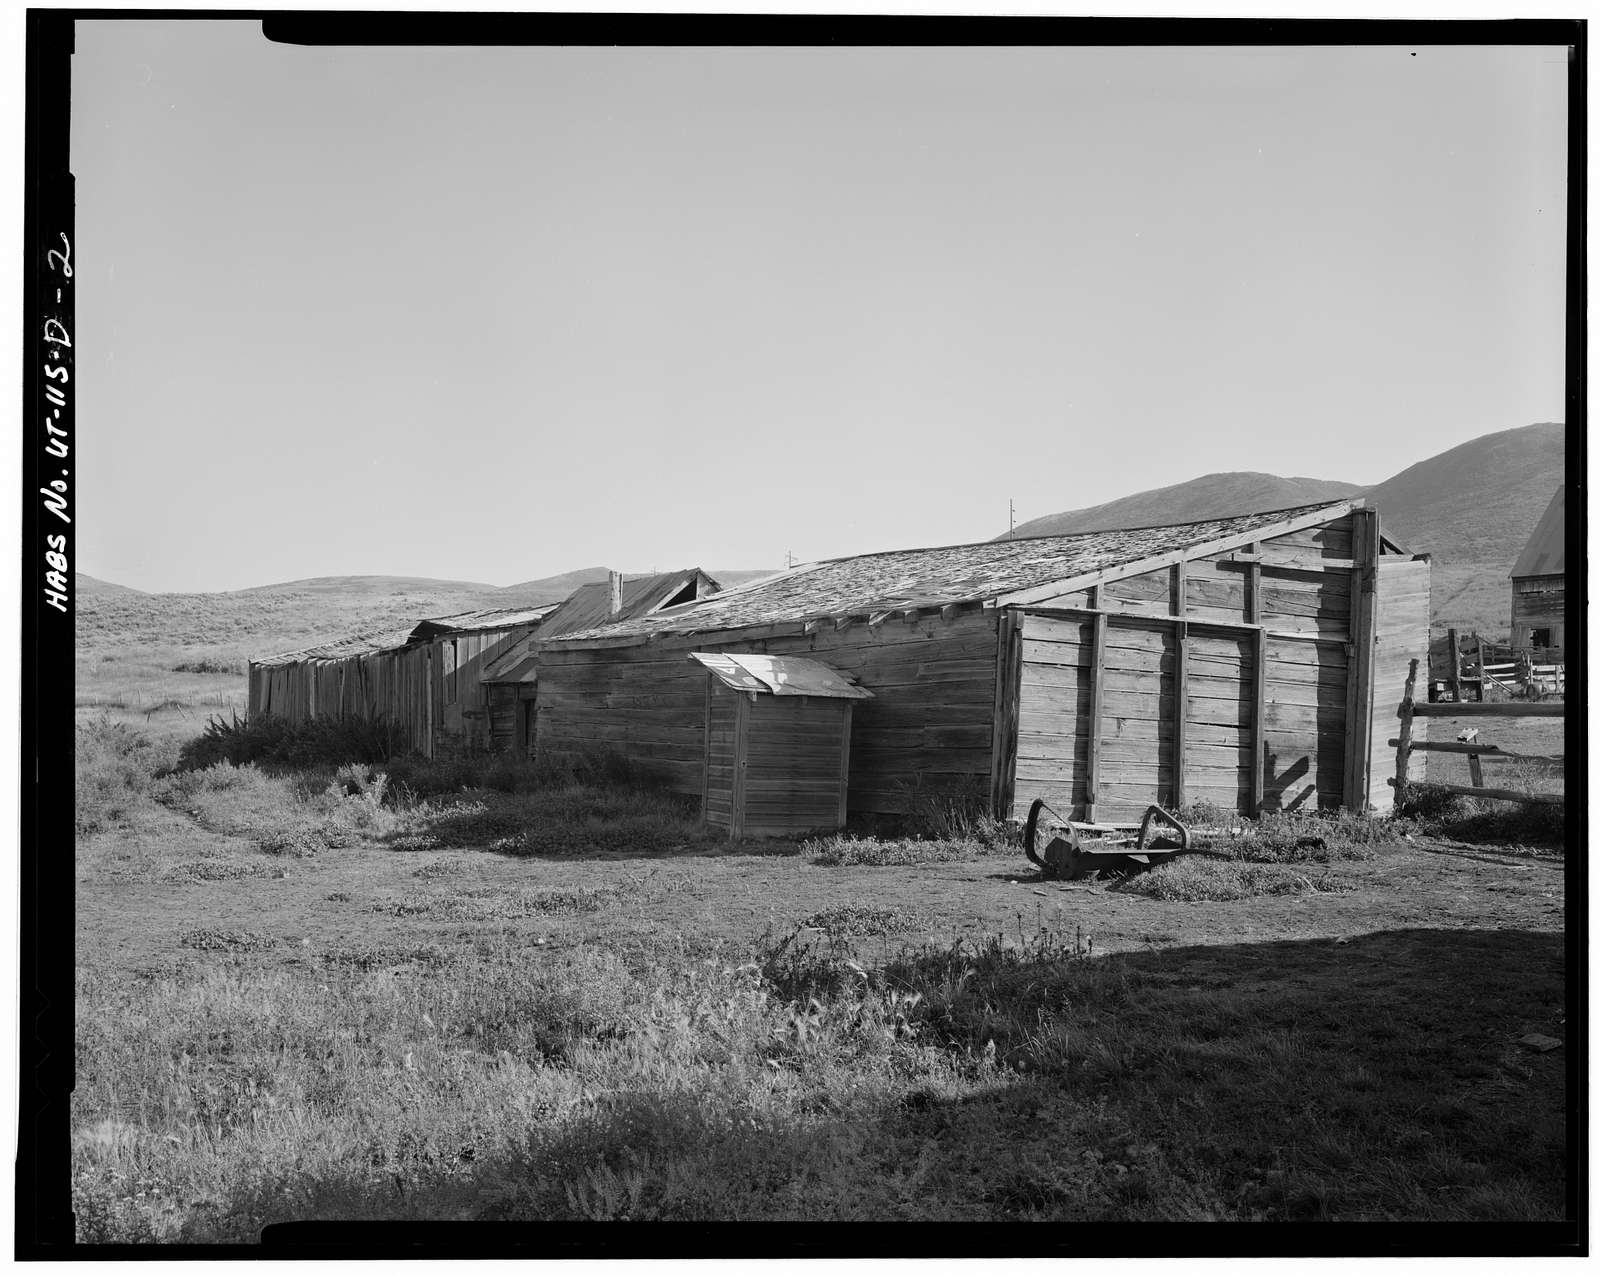 Henry Cluff Ranch, Shed, Jordanelle Valley, Keetley Mine Road at U.S. Route 40, Heber City, Wasatch County, UT